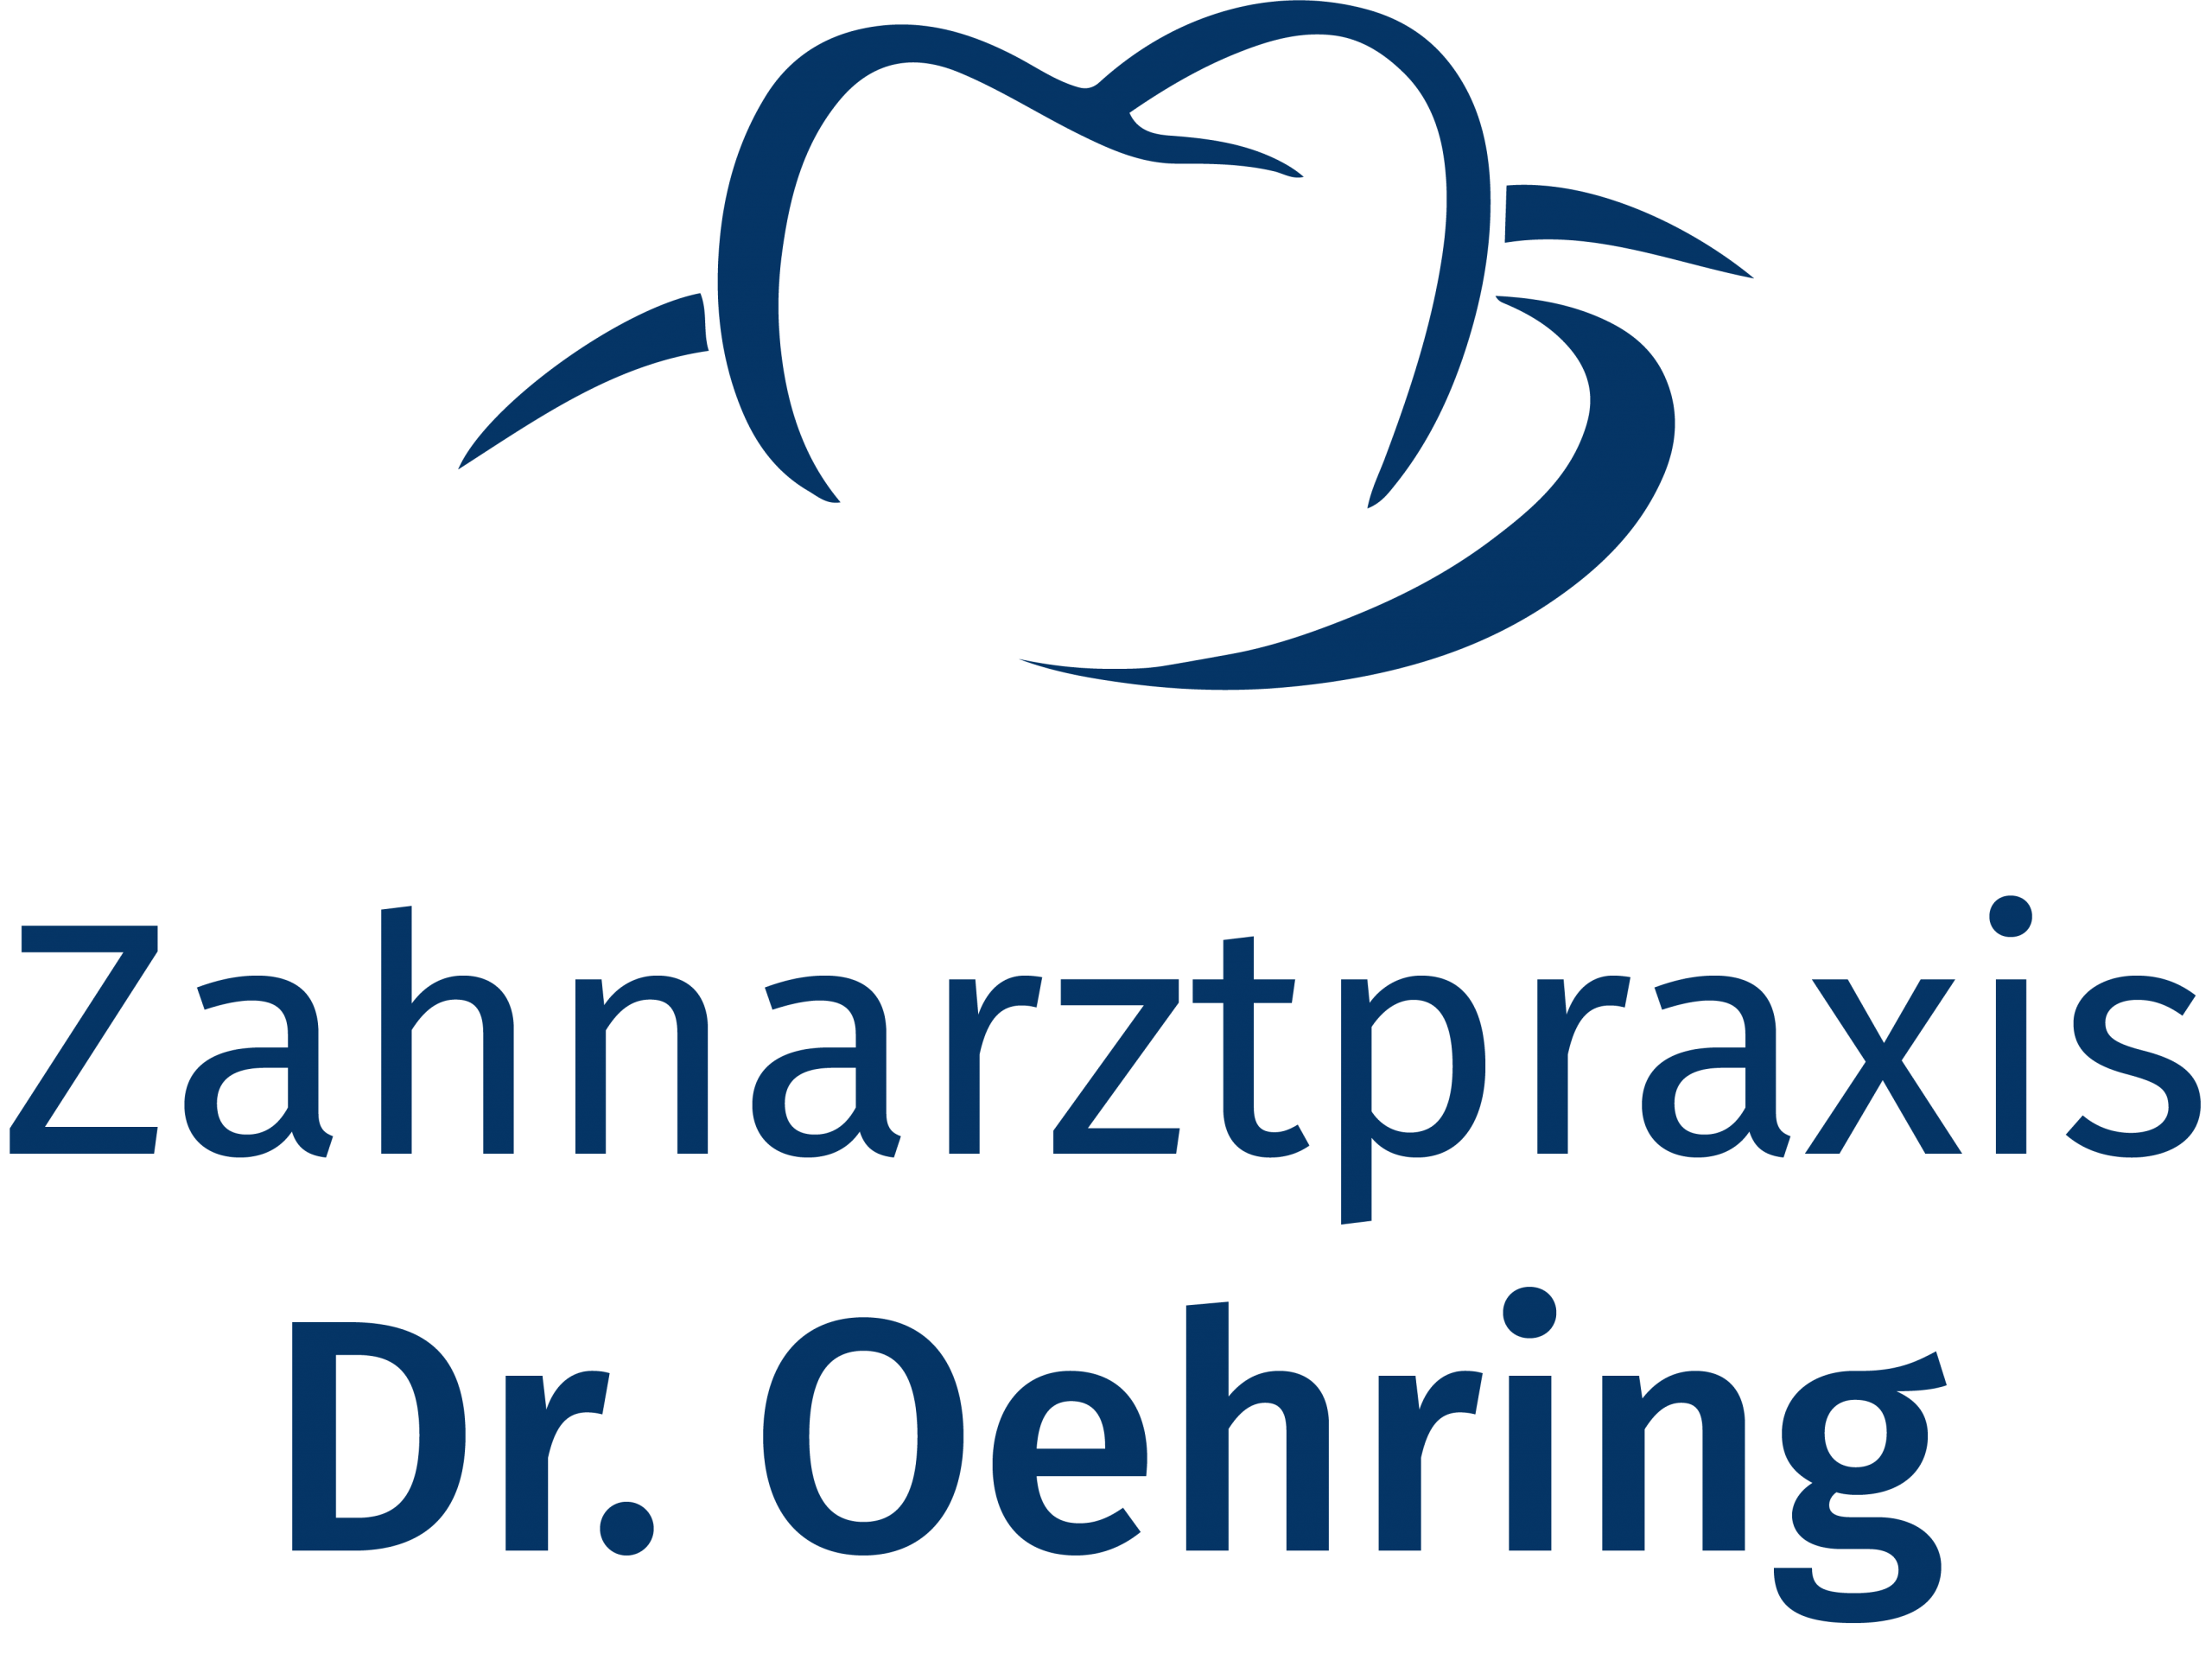 Zahnarztpraxis Dr. Oehring  | Jena